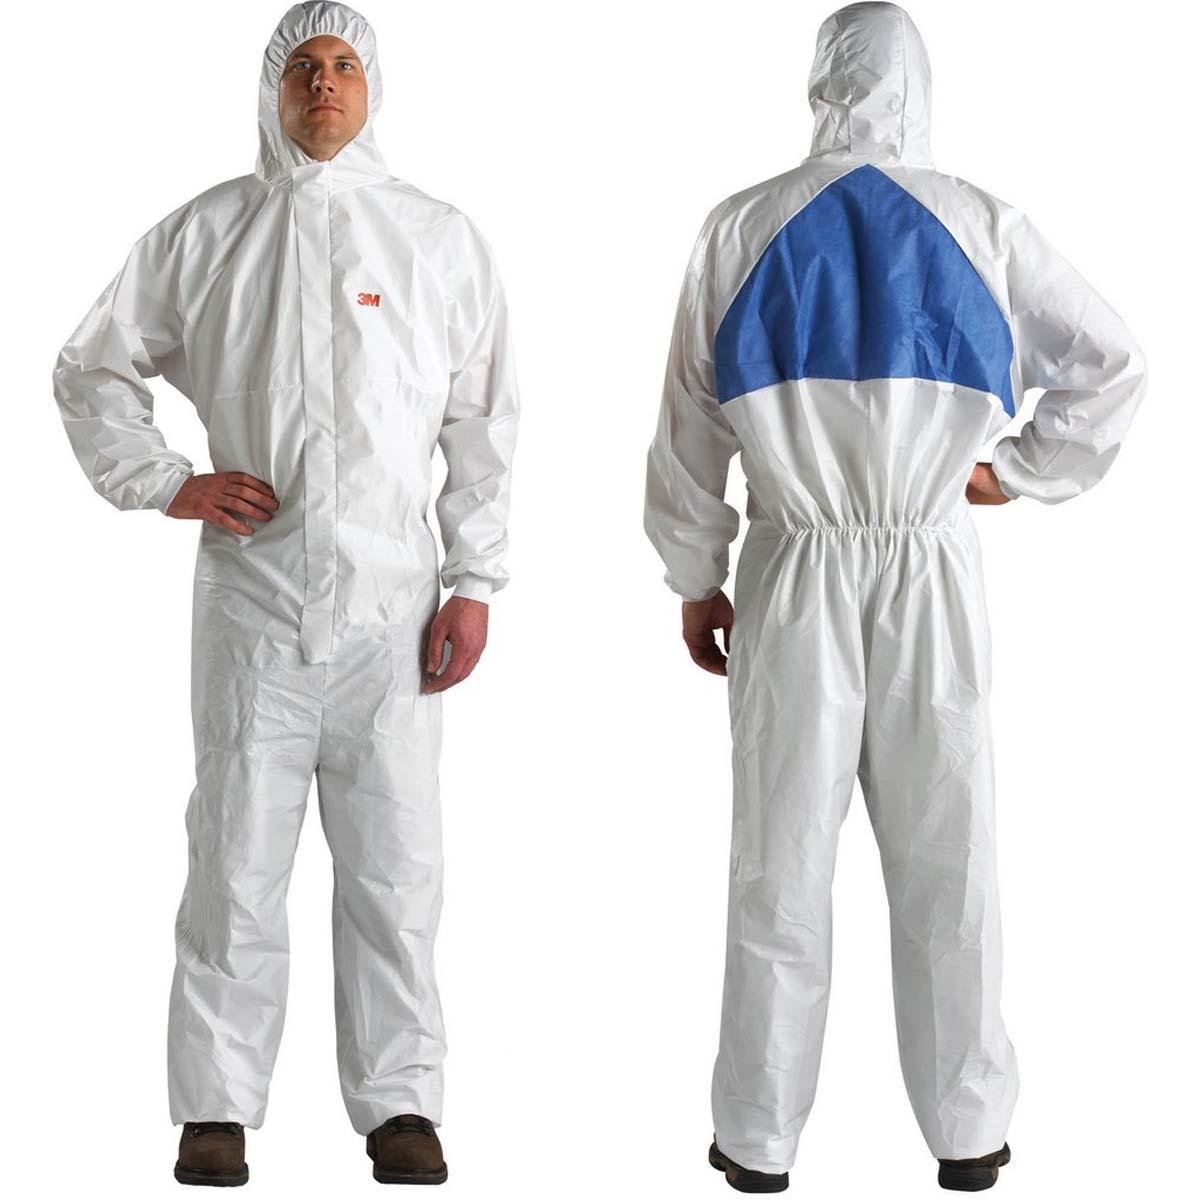 """3Mâ""""¢ Disposable Protective Coverall Safety Work Wear 4540+XL/00603(AAD)"""